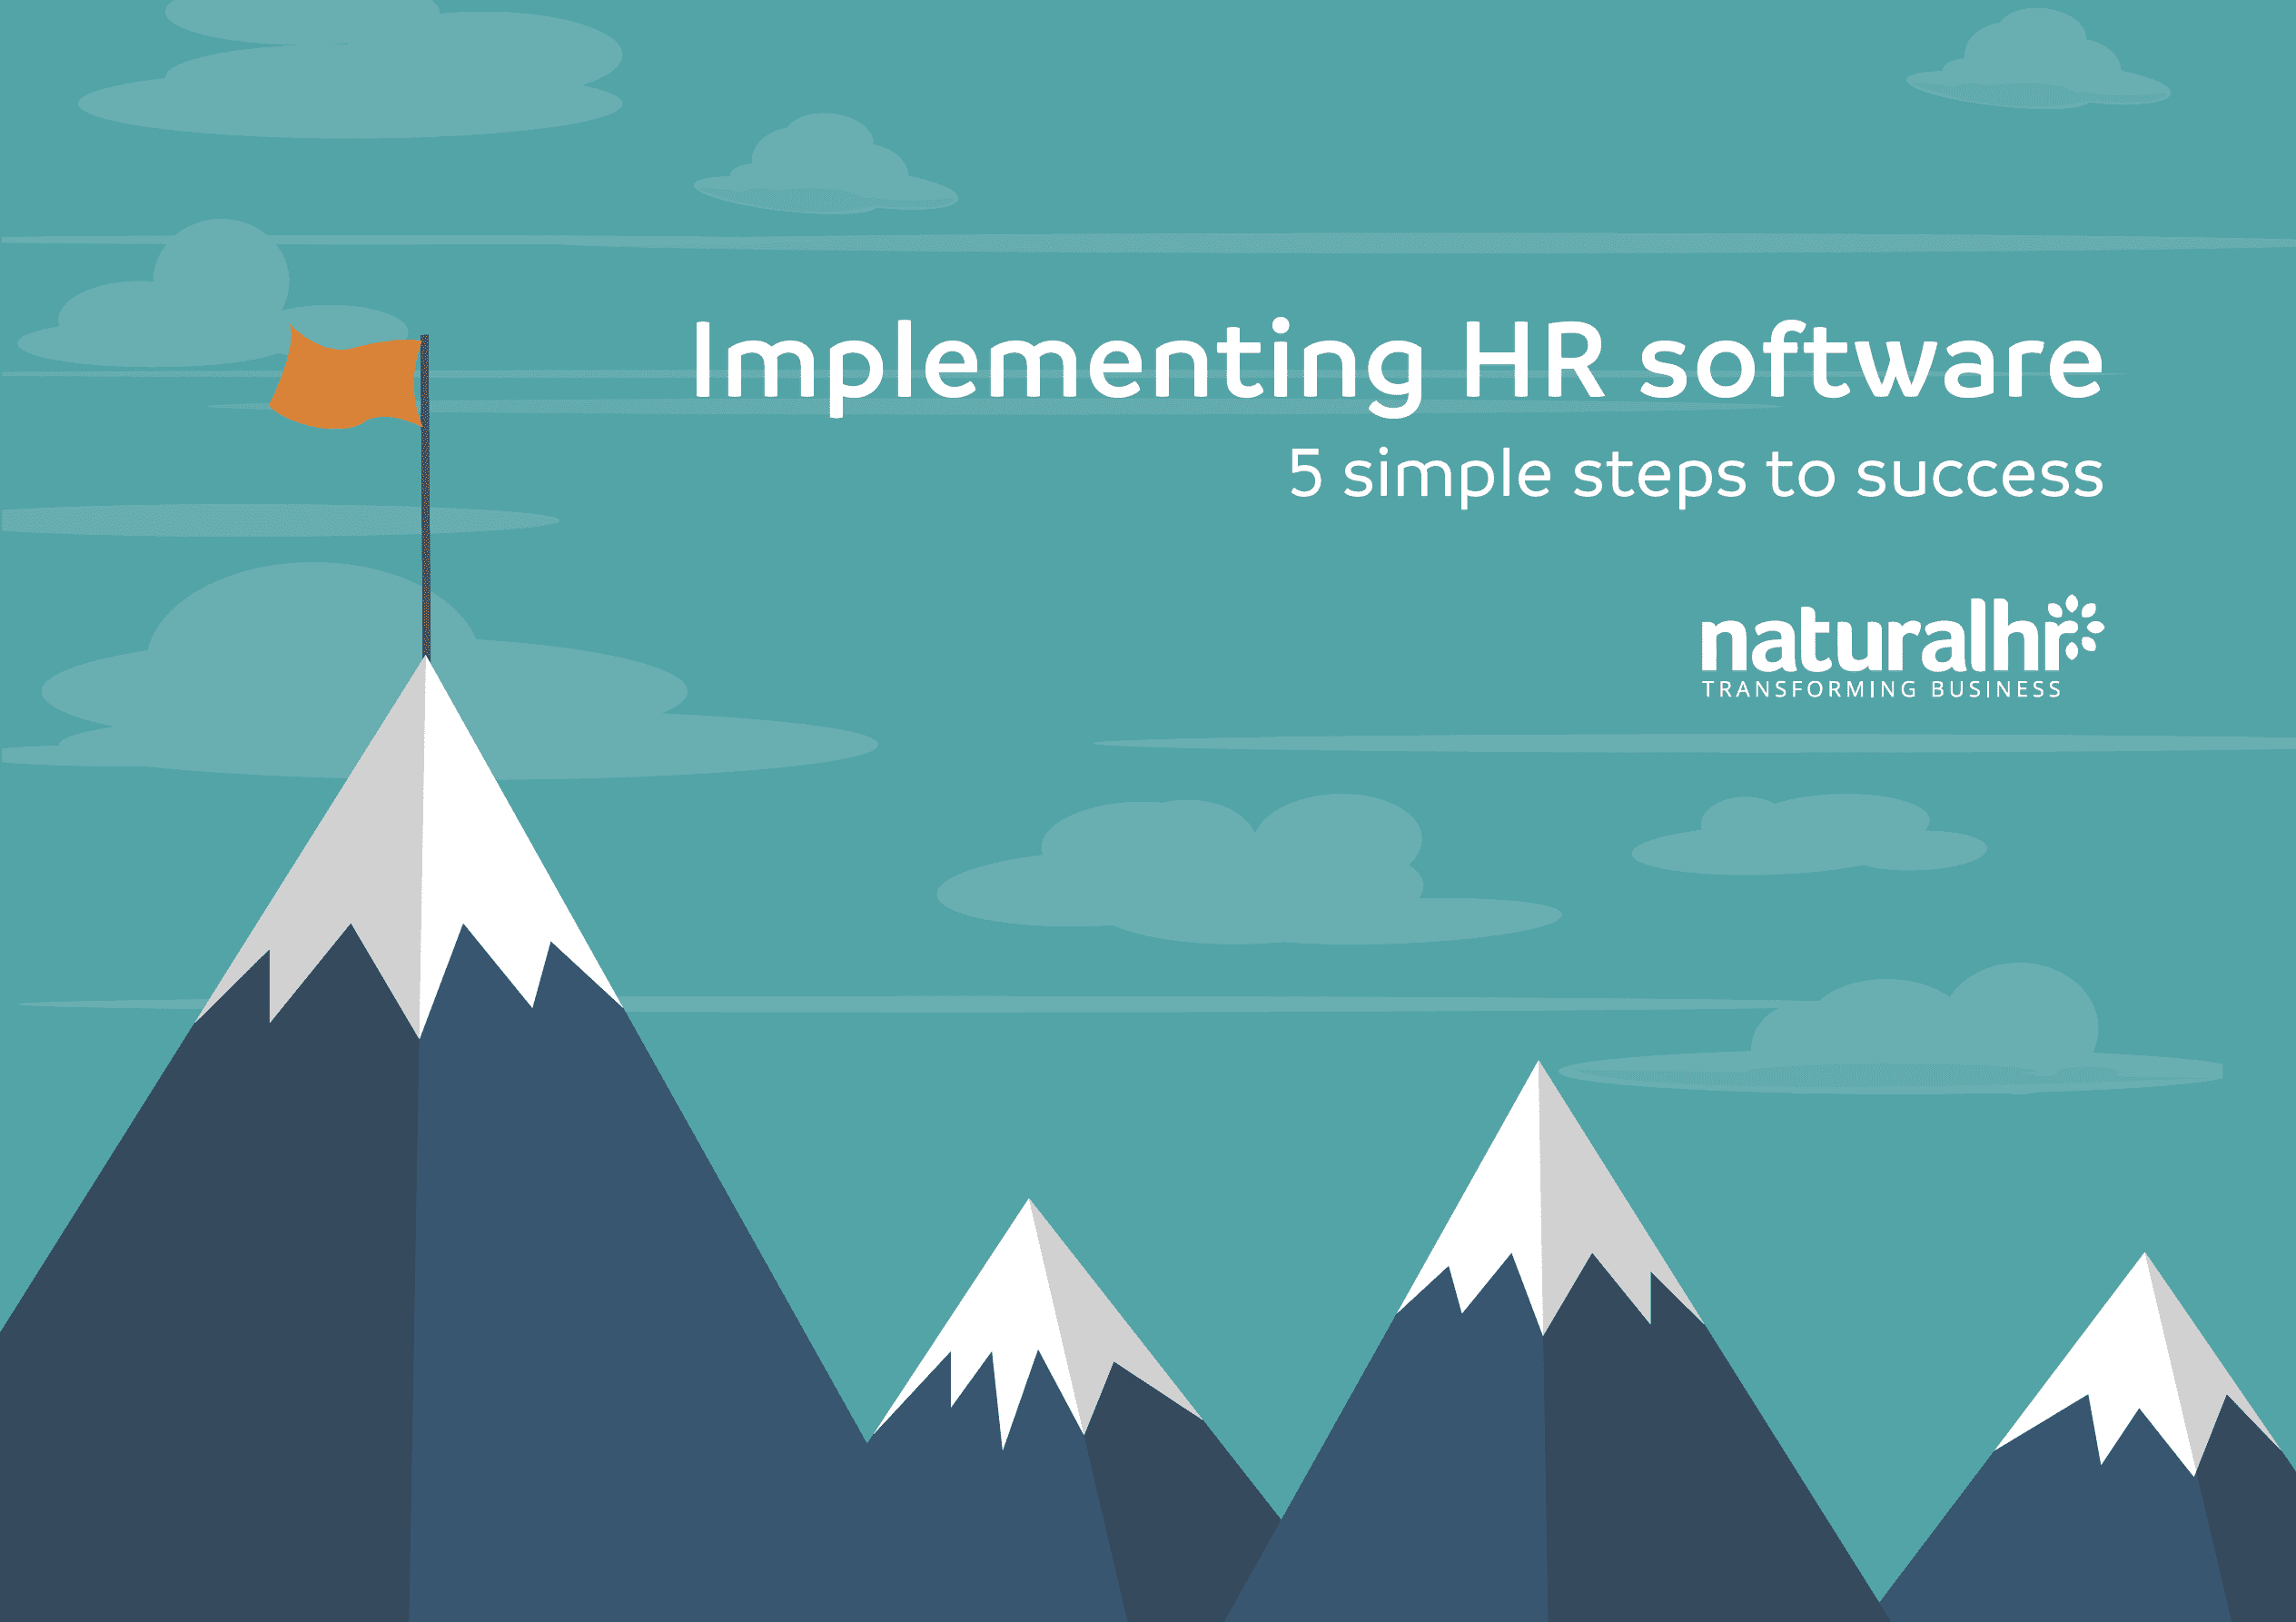 implementing hr software guide